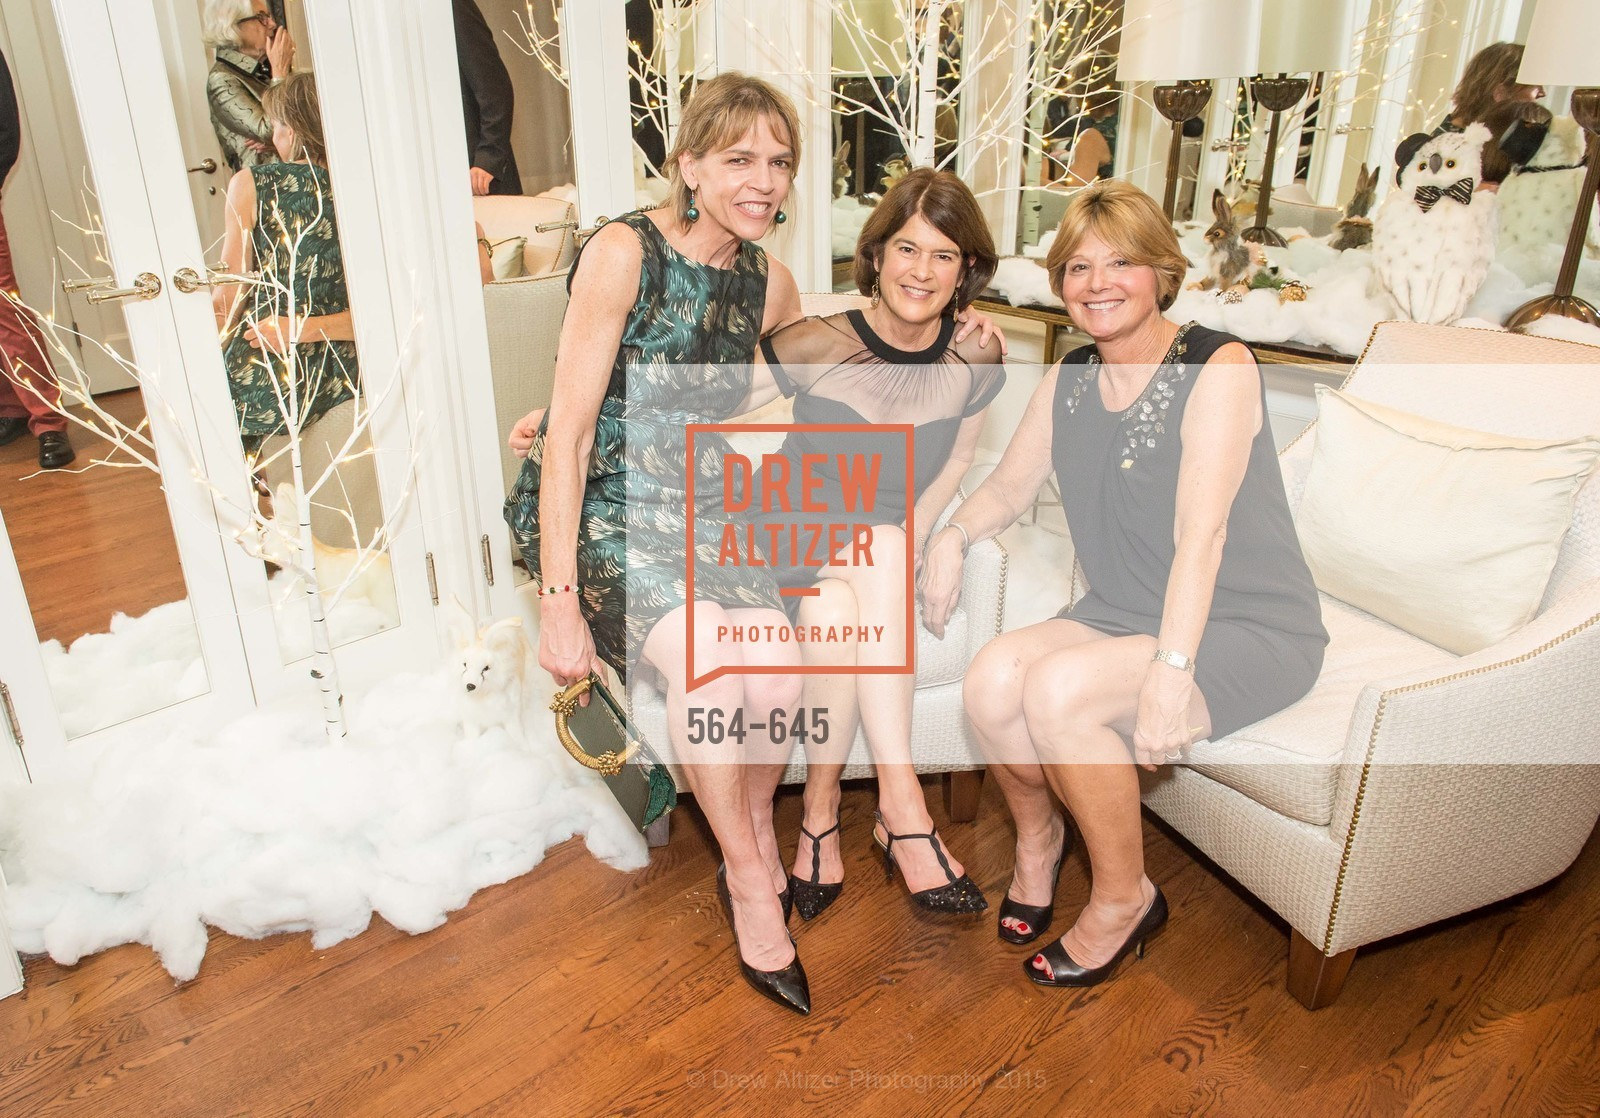 Beth Schnitzer, Patricia Foester, Debbie Rivard, Atherton Holiday Party, Private Residence, December 12th, 2015,Drew Altizer, Drew Altizer Photography, full-service agency, private events, San Francisco photographer, photographer california